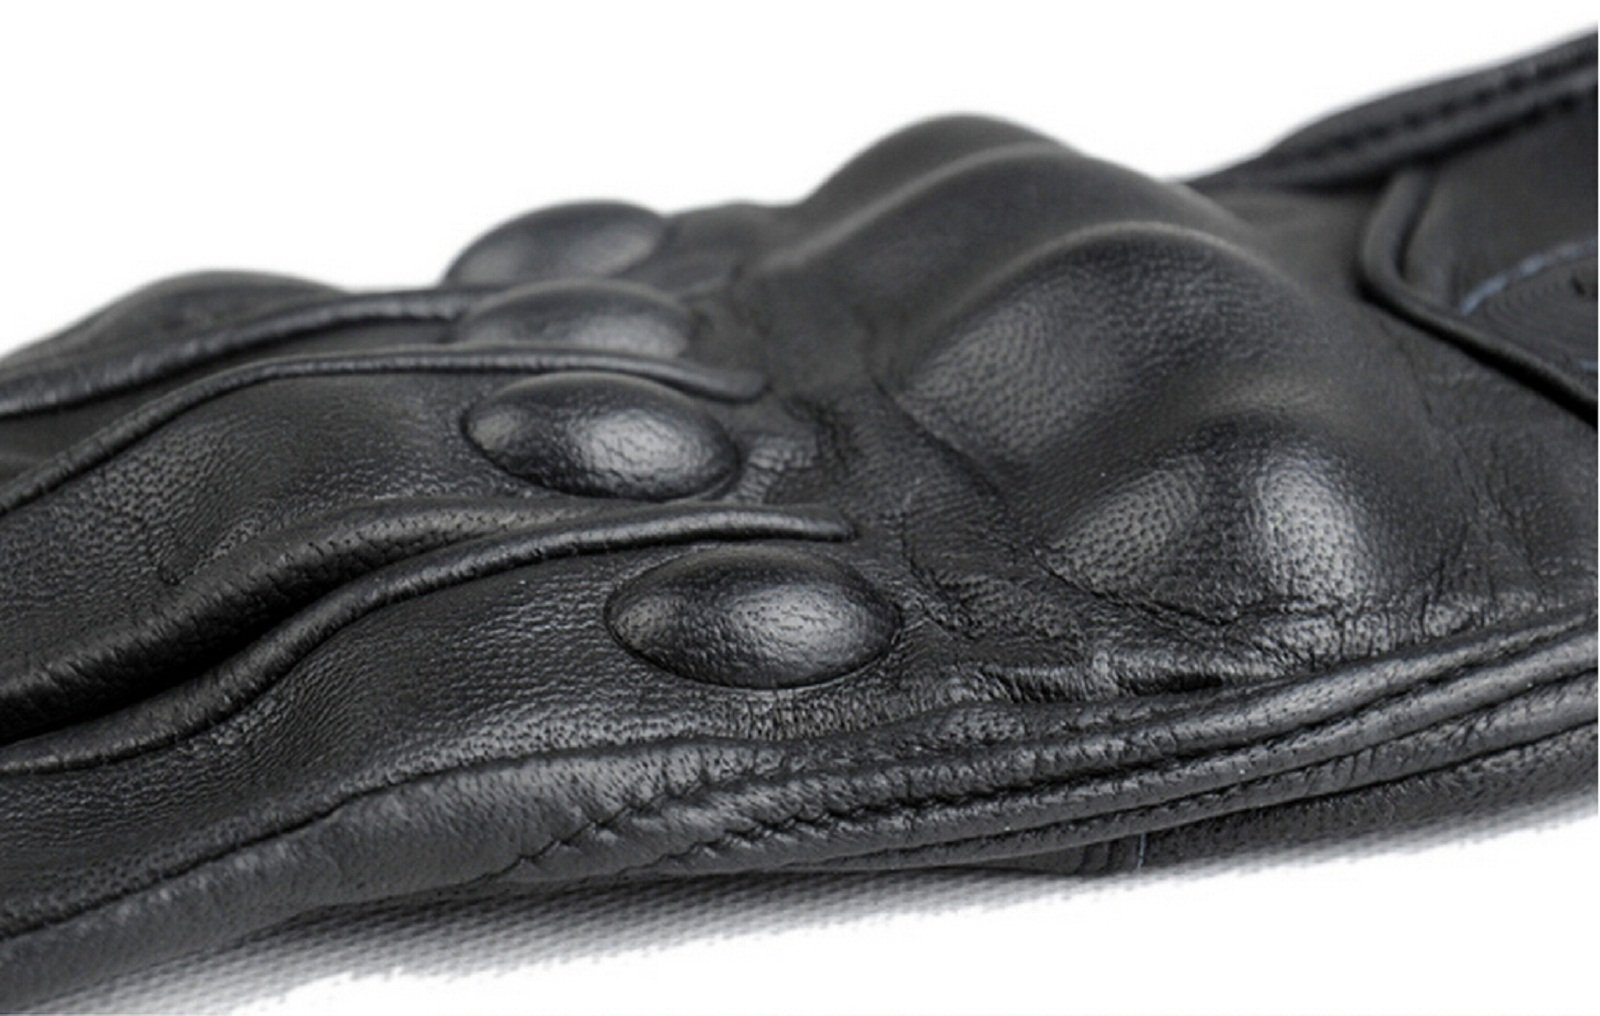 FXC Full Finger Motorcycle Leather Gloves Men's Premium Protective Motorbike Gloves (L, Solid) by FXC (Image #6)